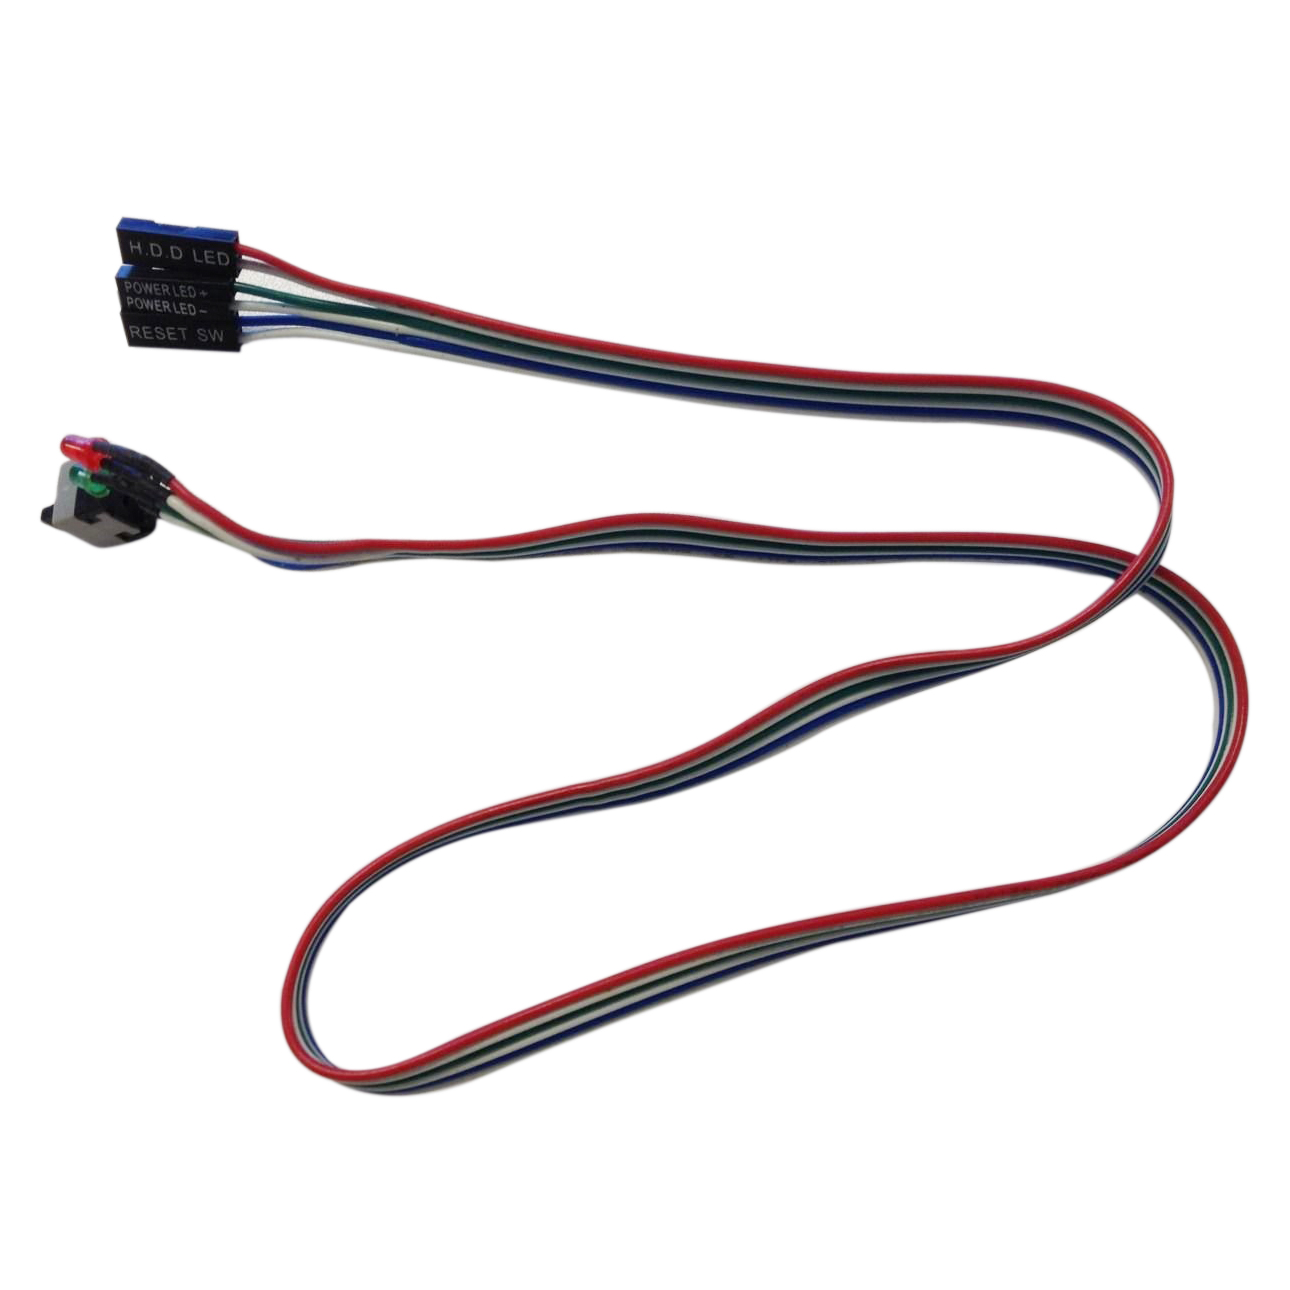 2 Pcs 20.5 Long Power Button Switch Cable for PC Reset Computer